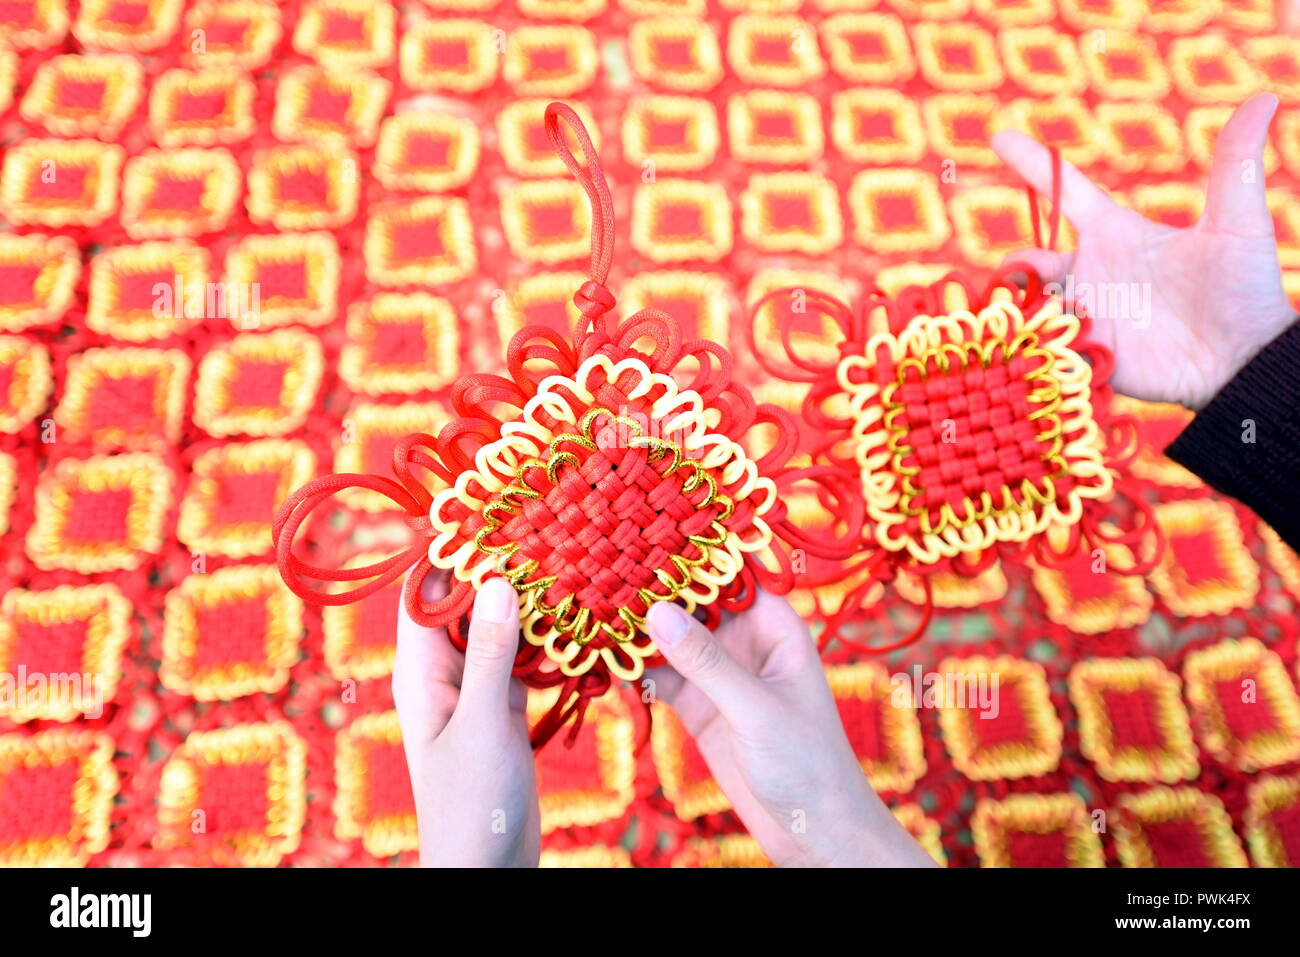 Linyi, Linyi, China. 16th Oct, 2018. Linyi, CHINA-The Chinese knotting manufacturing industry booms in Shancheng County, Linyi, east China's Shandong Province.Chinese knotting is a decorative handicraft art that began as a form of Chinese folk art in the Tang and Song dynasty (960â€'1279 CE) in China. The technique was later popularized in the Ming) and spread to Japan and Korea. Credit: SIPA Asia/ZUMA Wire/Alamy Live News - Stock Image